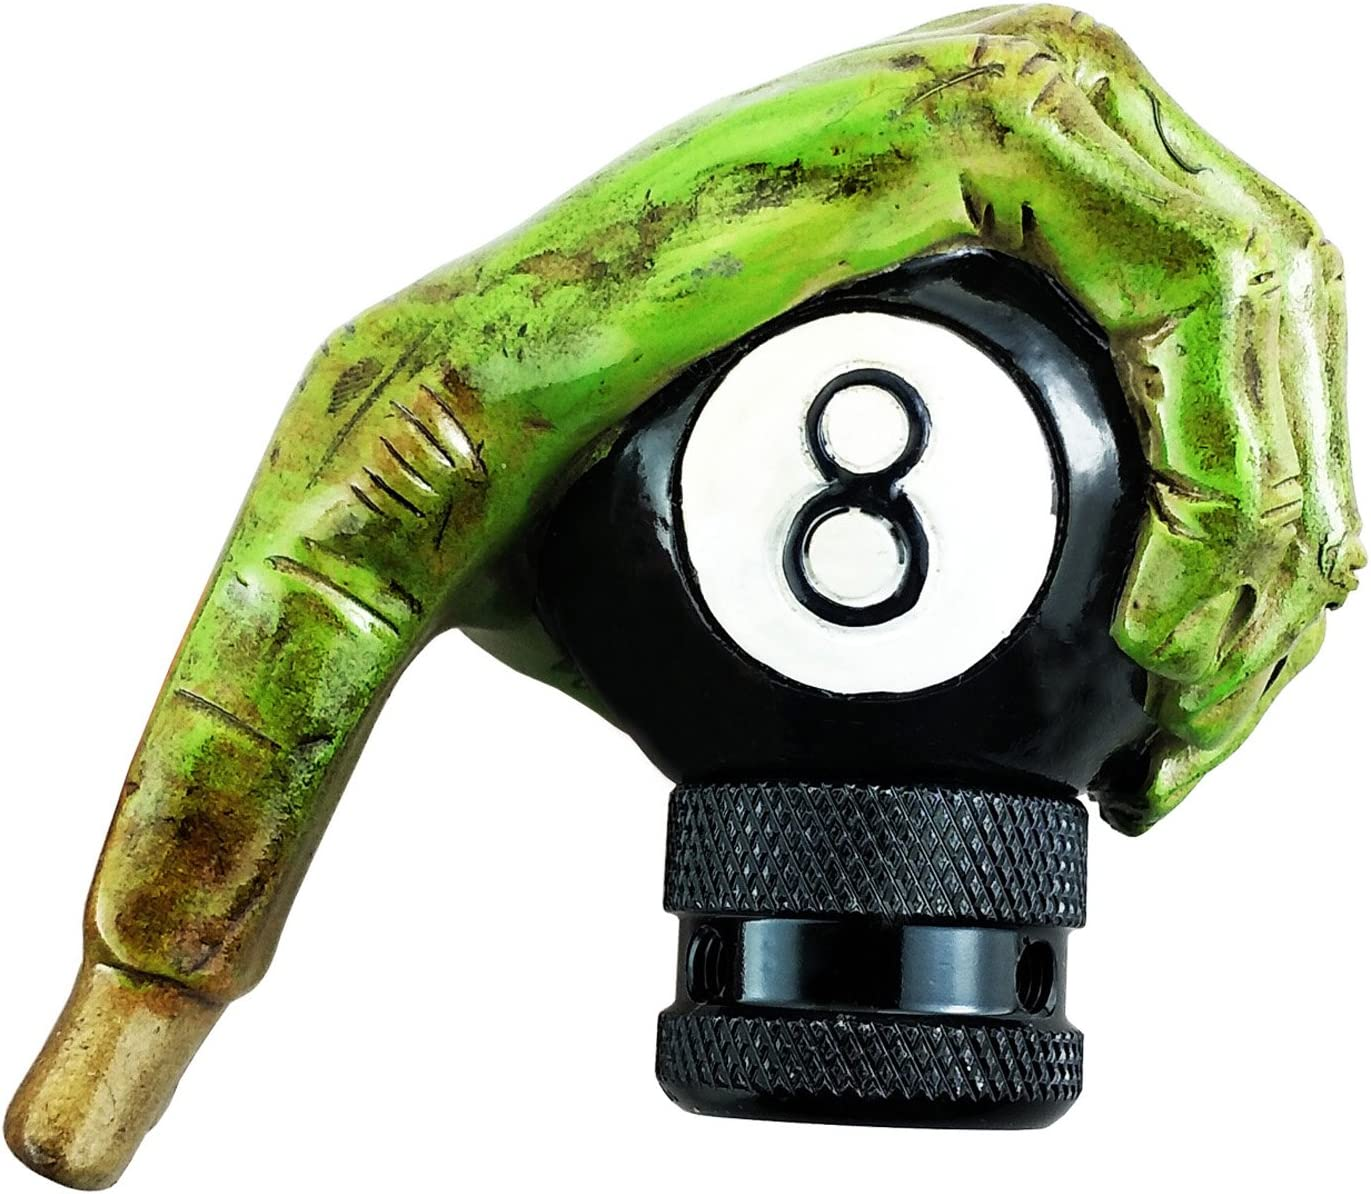 Lunsom 8 Ball Shifter Knob Green Hand Car Transmission Shifter Stick Handle Head Fit Most Automatic Manual Vehicle